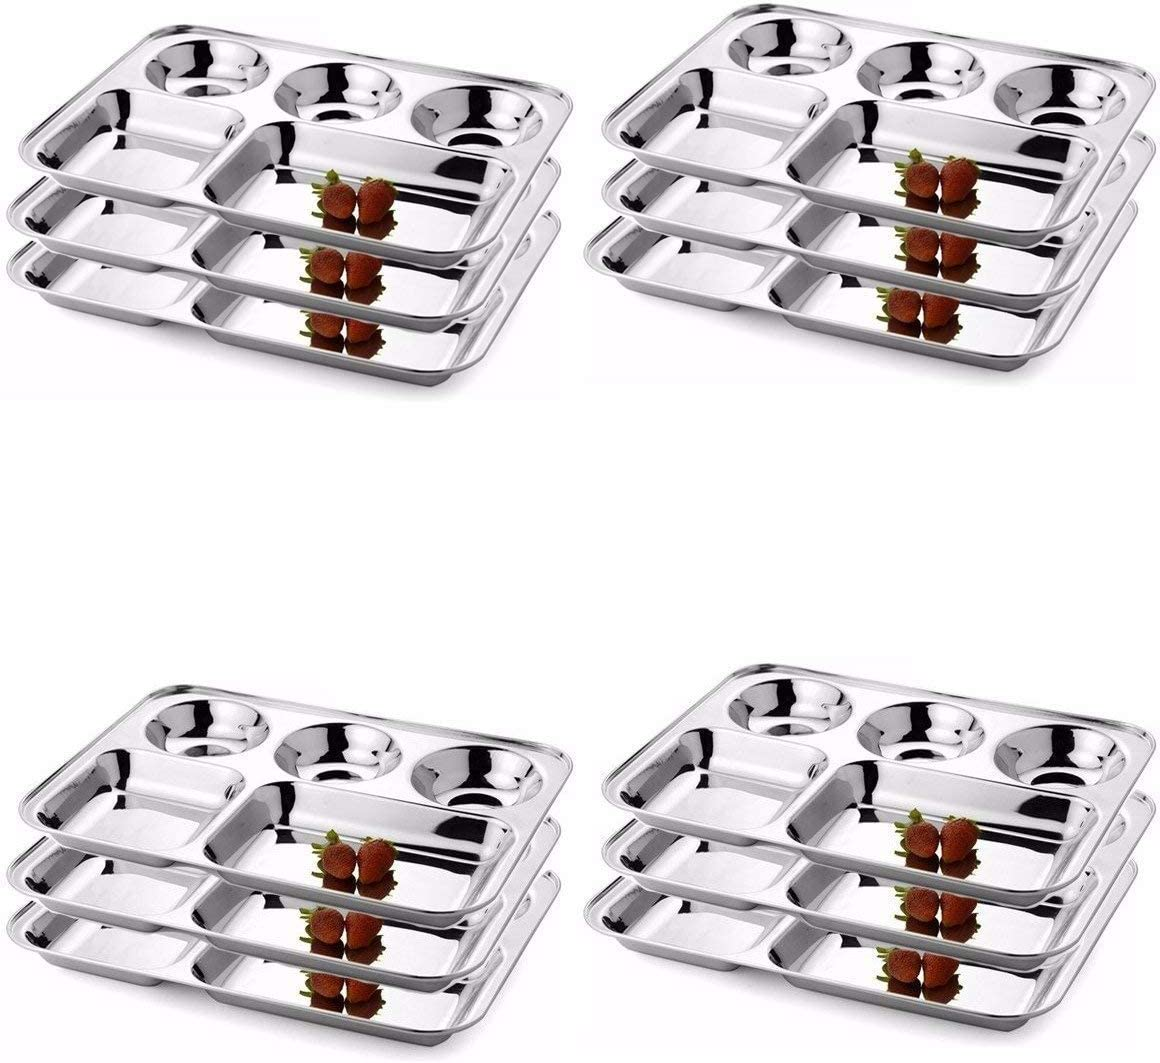 IndiaBigShop Stainless Steel Five Compartment OFFicial Weekly update Rectangle Plates